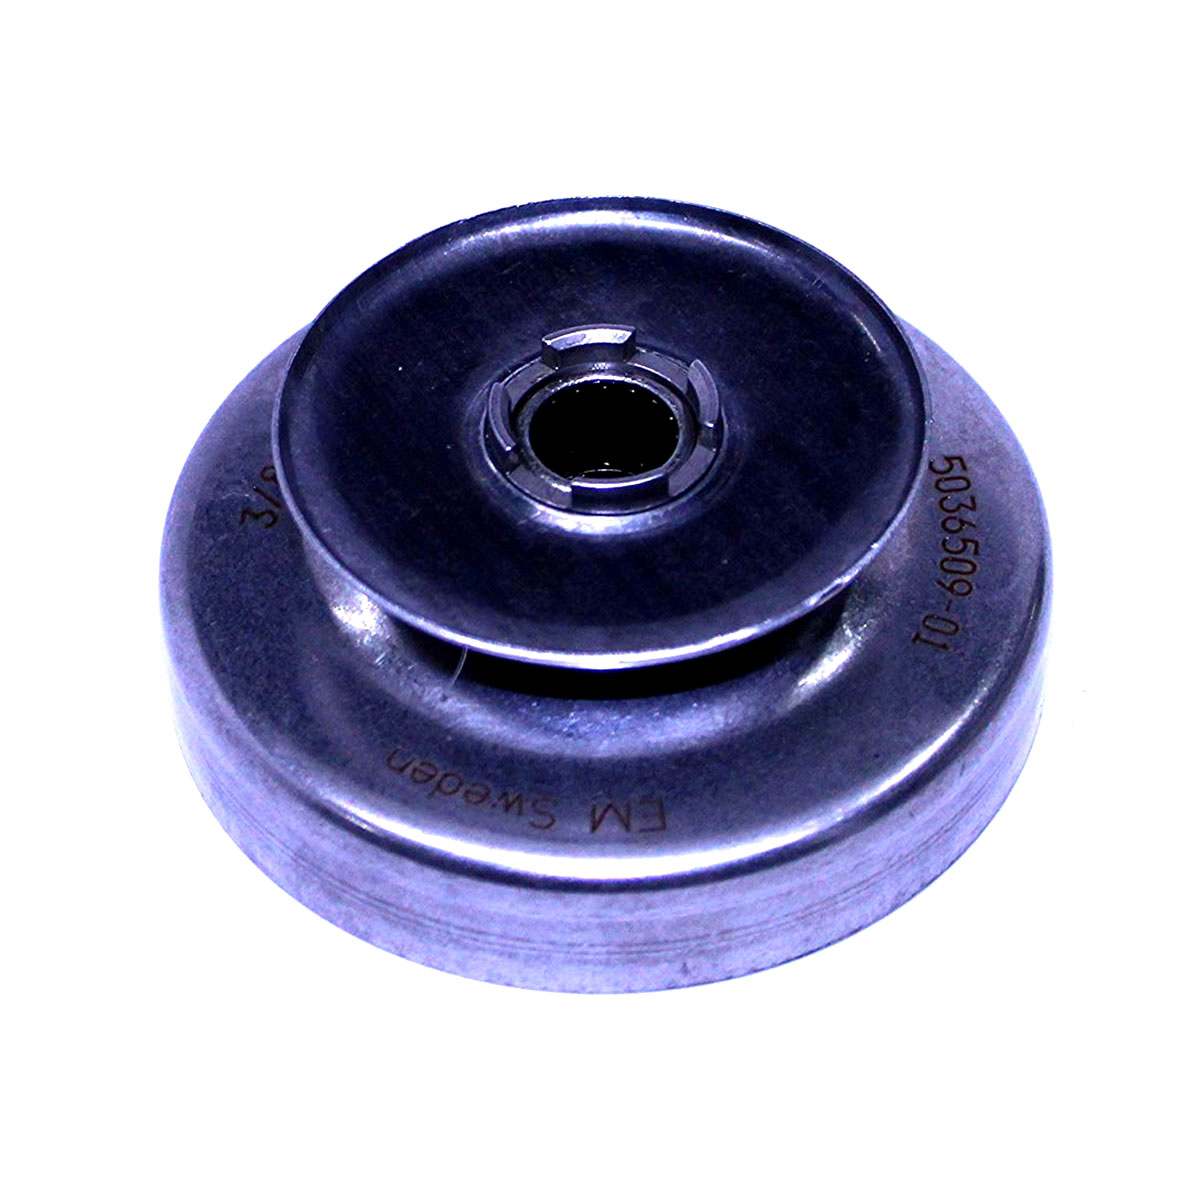 Husqvarna Clutch Drum 3/8 X 7 503650901